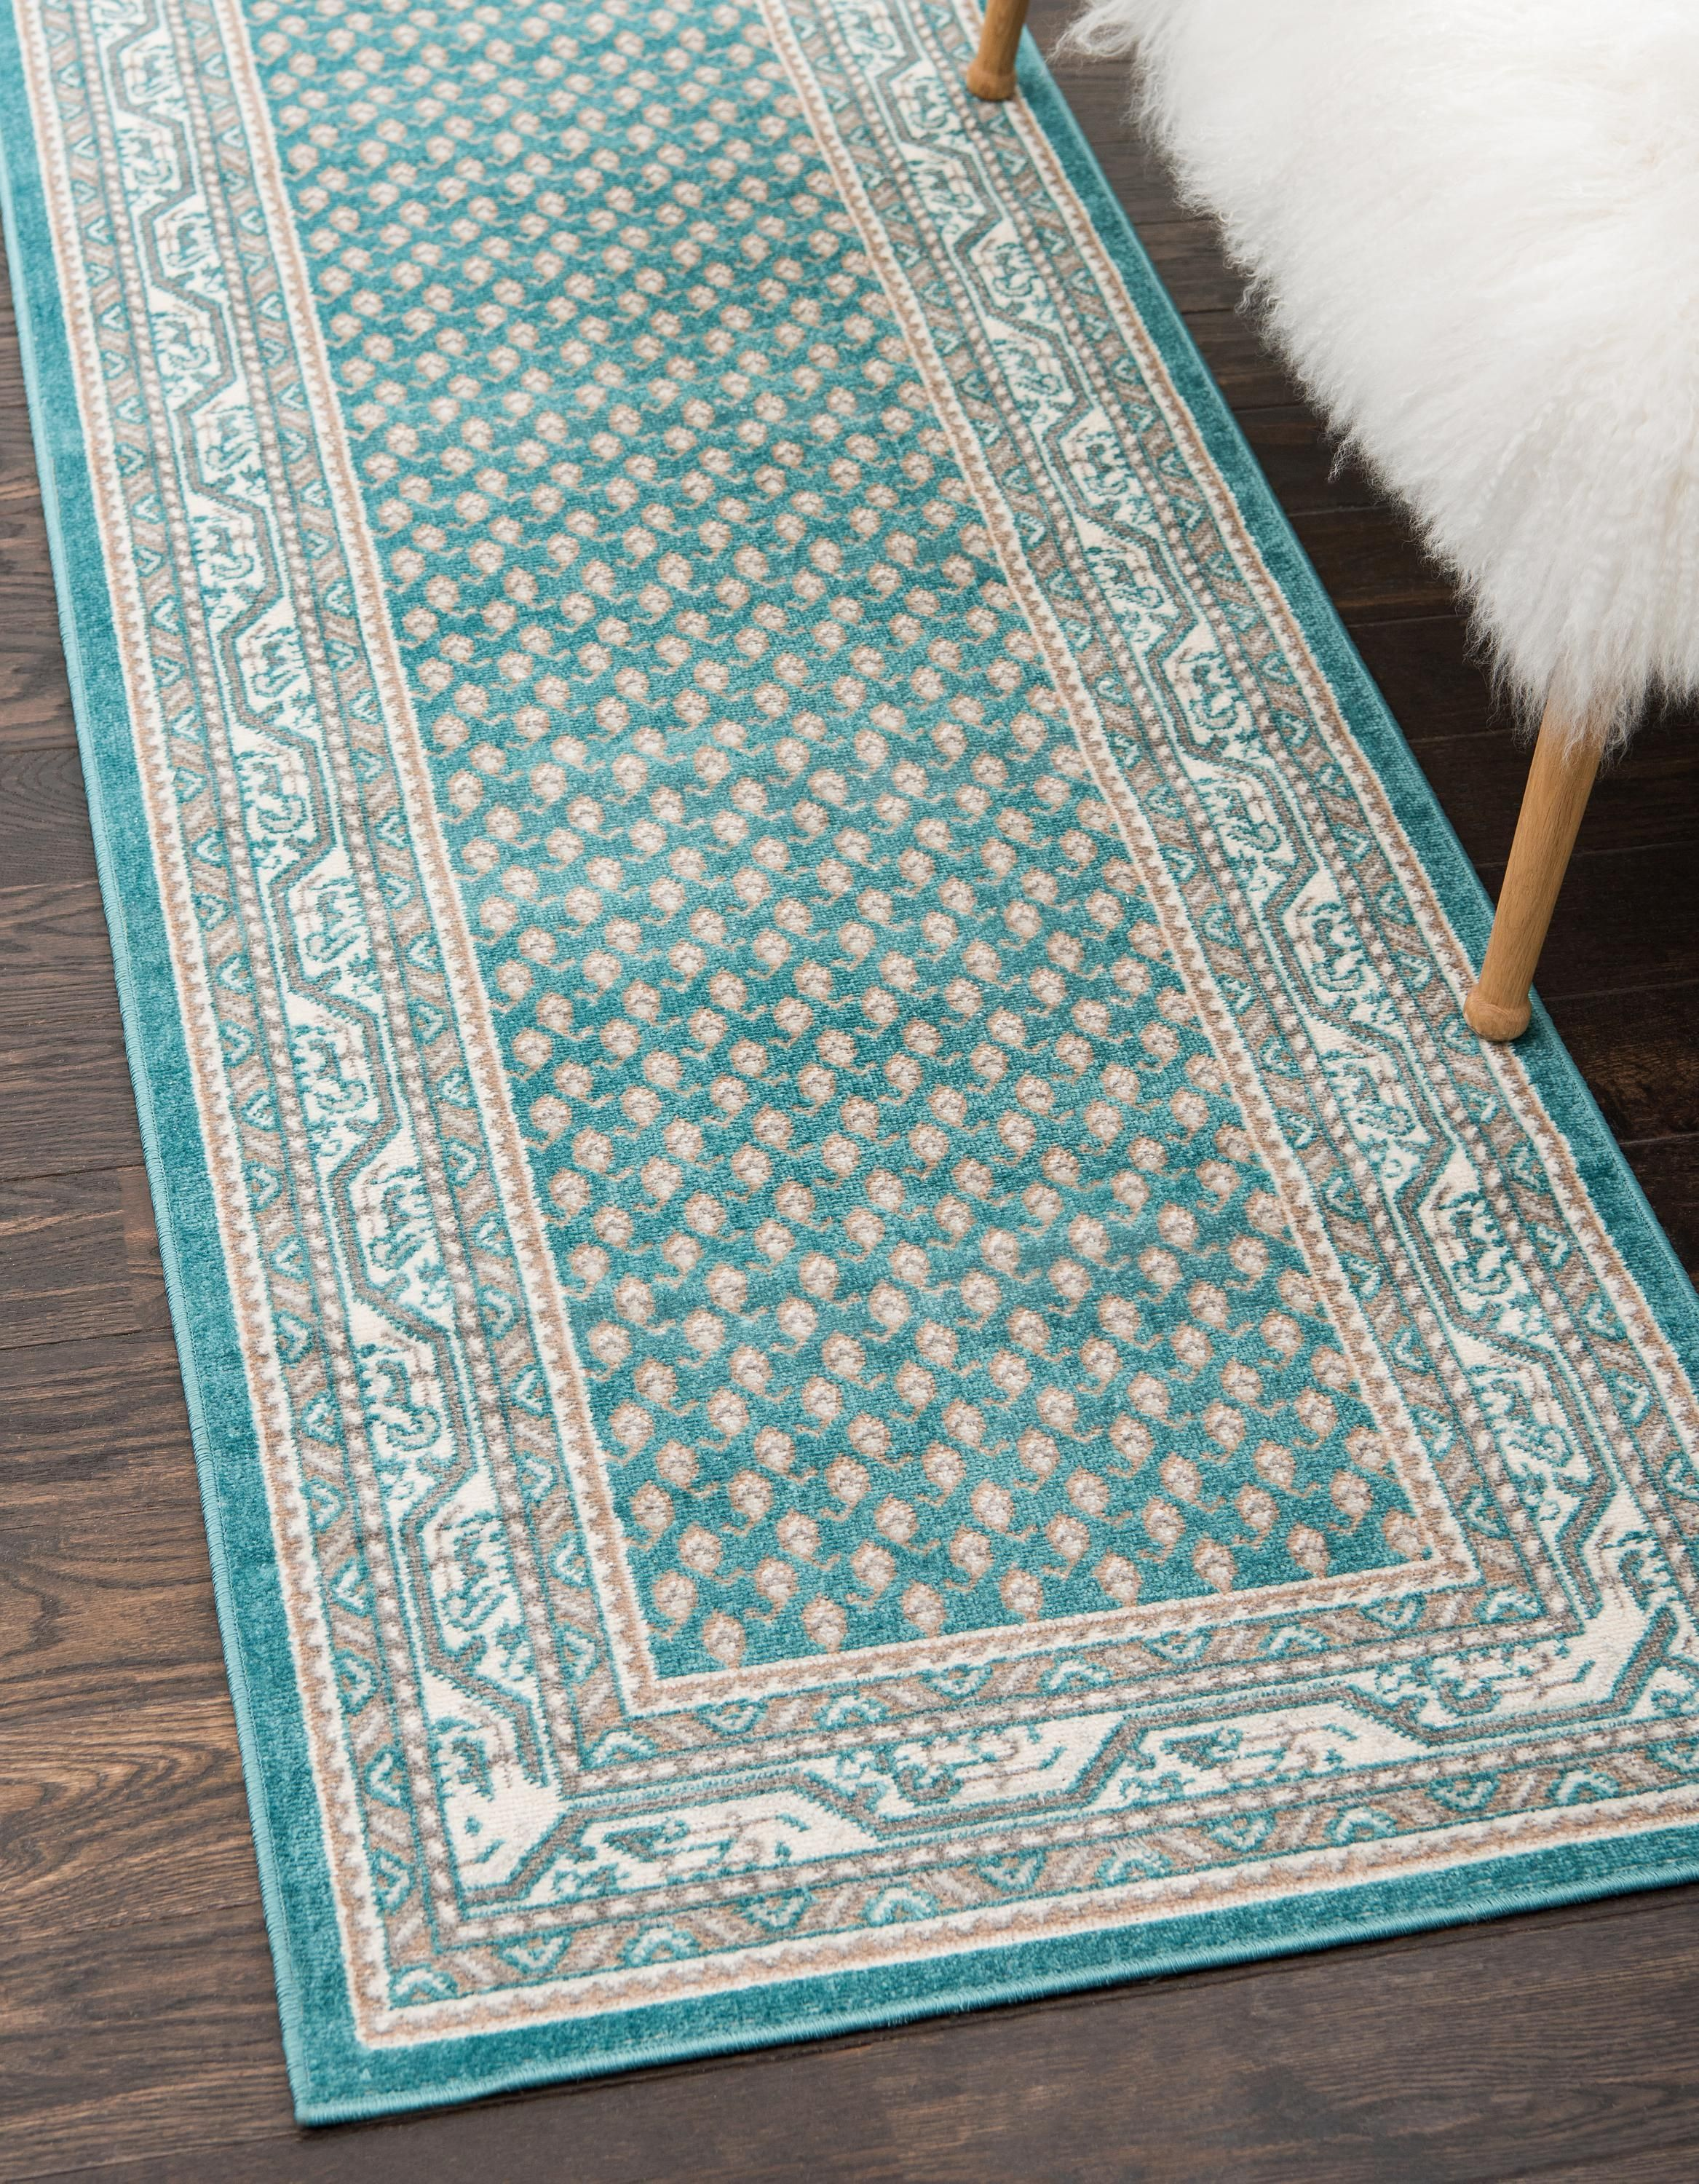 Teal 2 9 X 9 10 Tribeca Runner Rug Area Rugs Esalerugs Rugs Rug Runner Beautiful Rug